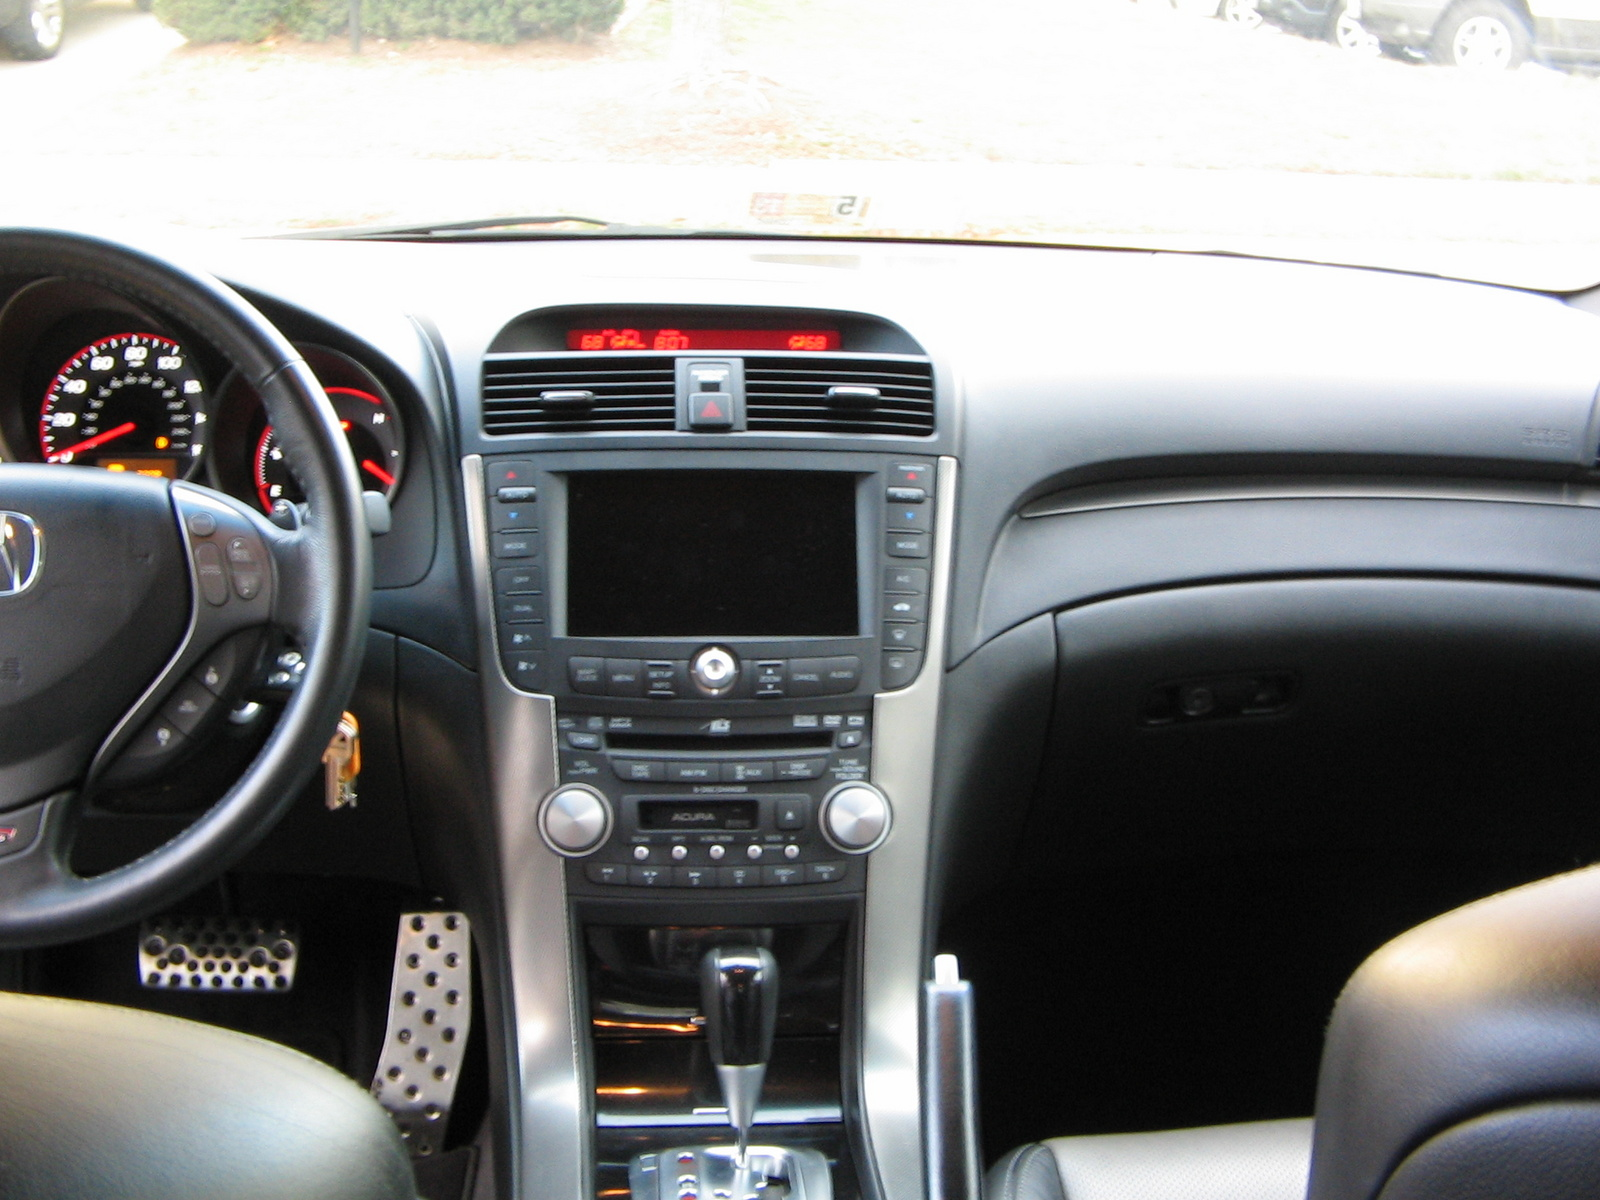 2008 Acura TL Other Pictures CarGurus